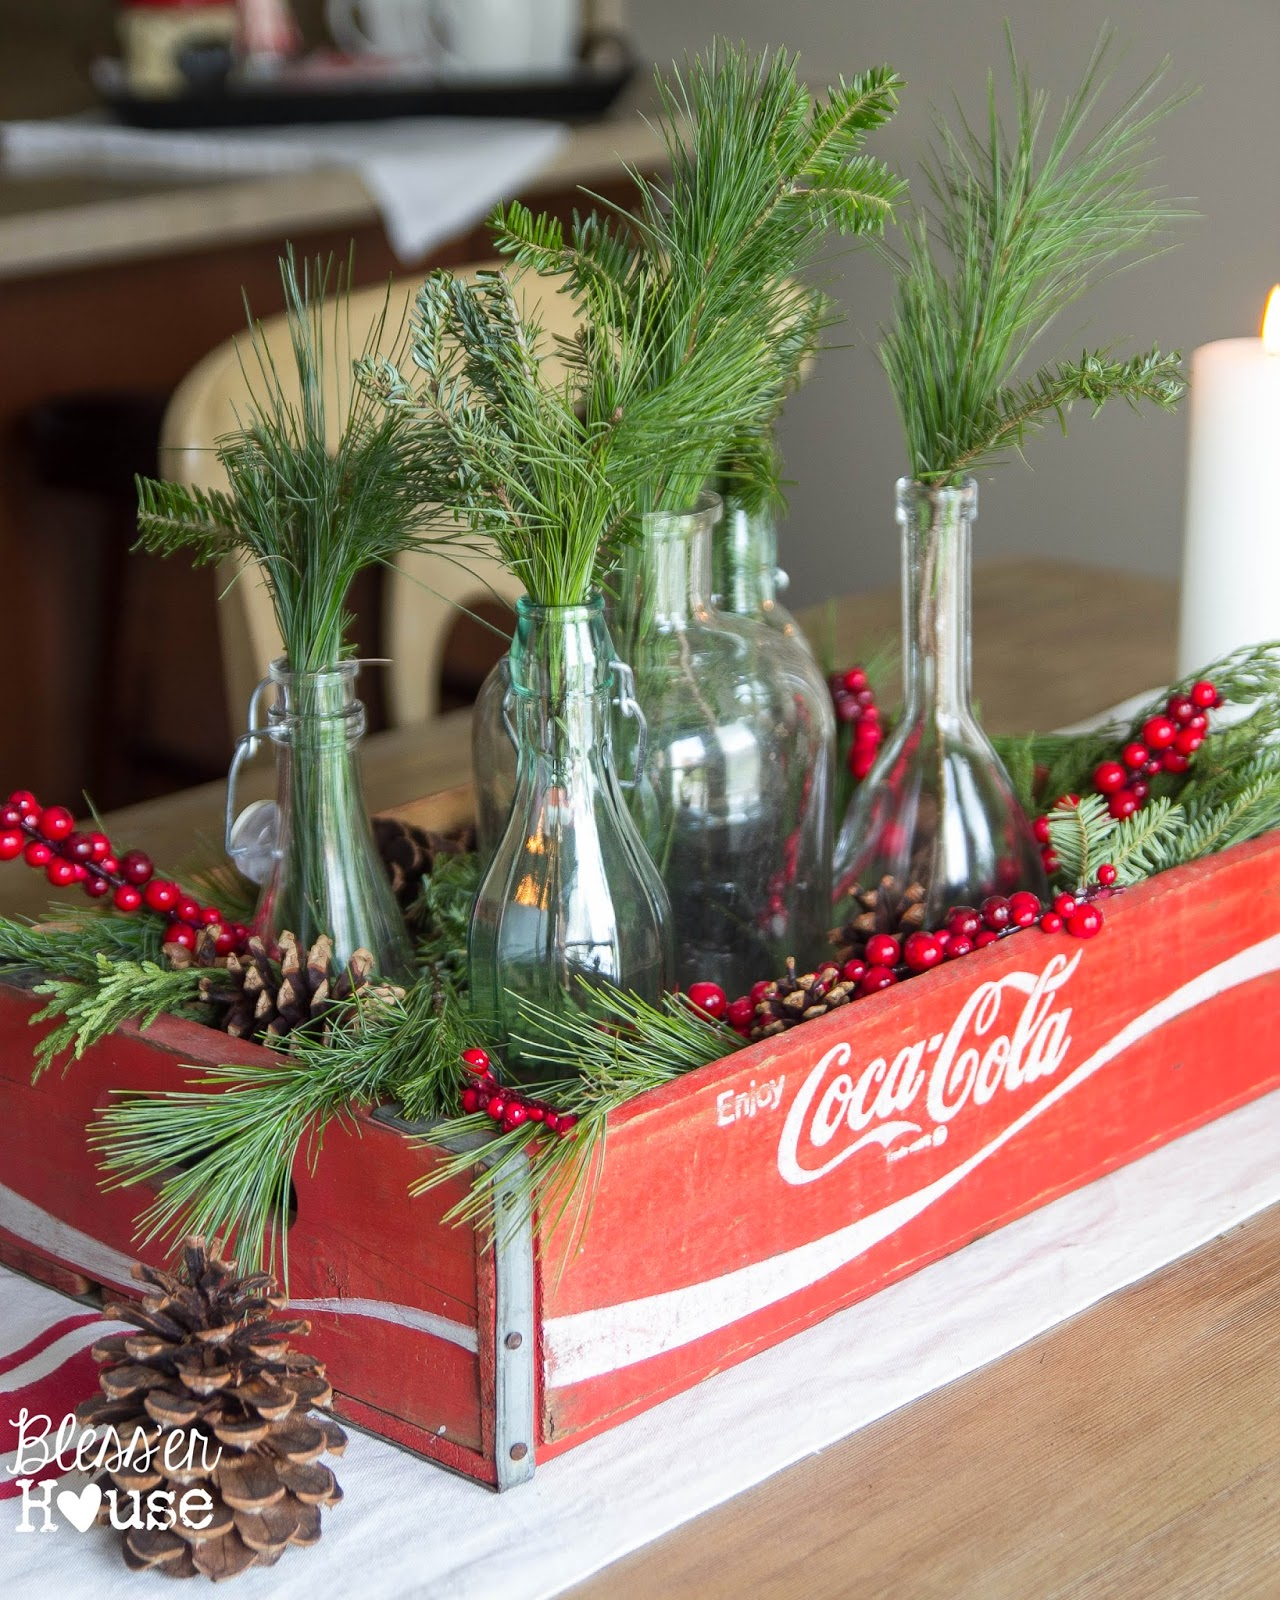 Holiday Home Tour 2014 A Cozy Eclectic Christmas Bless er House